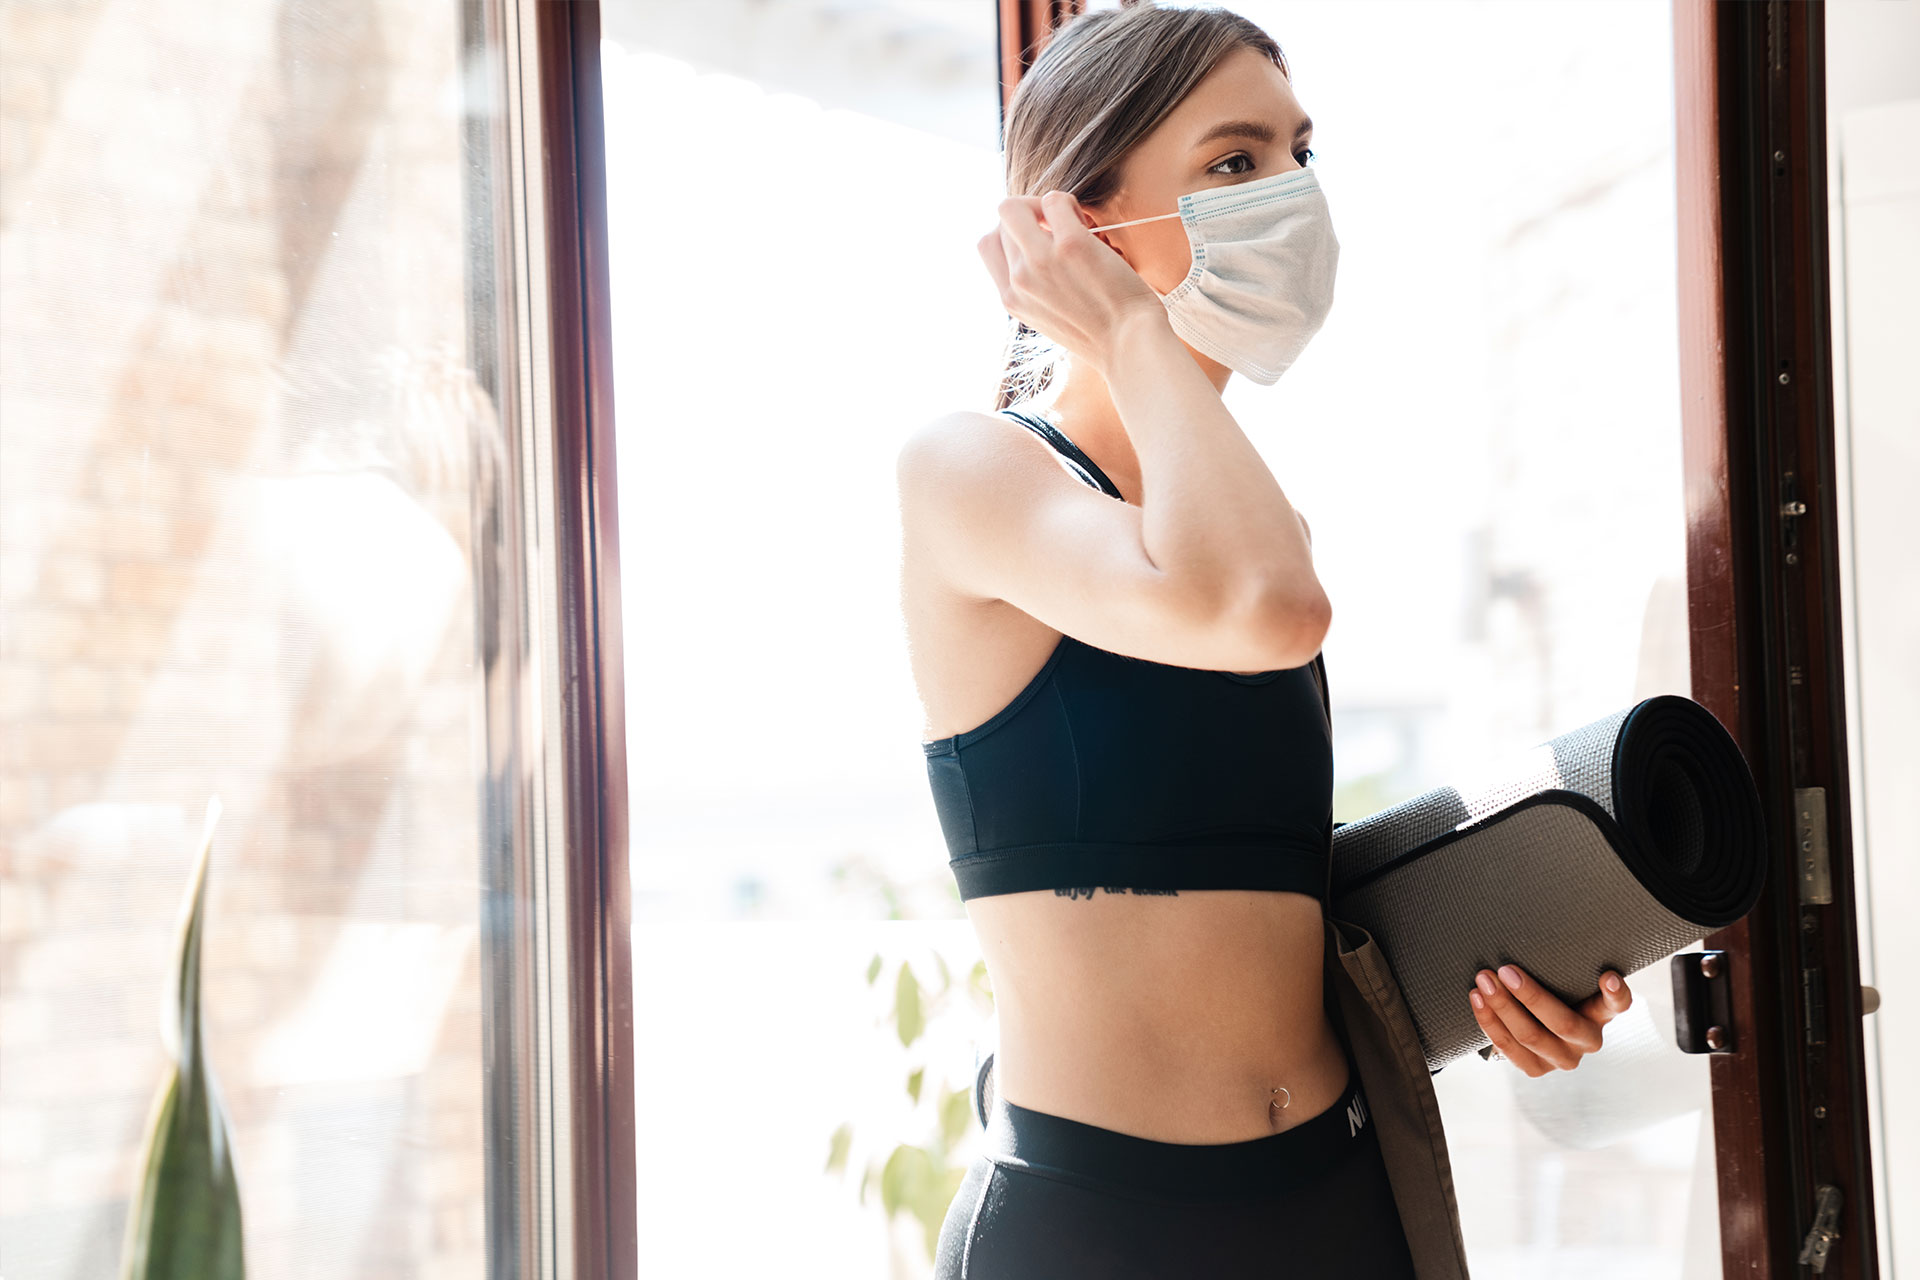 There's no time like the present to get back in gear for your fitness plans. Time to un-mask your abs at LoHi Athletic Club in Denver, Colorado.